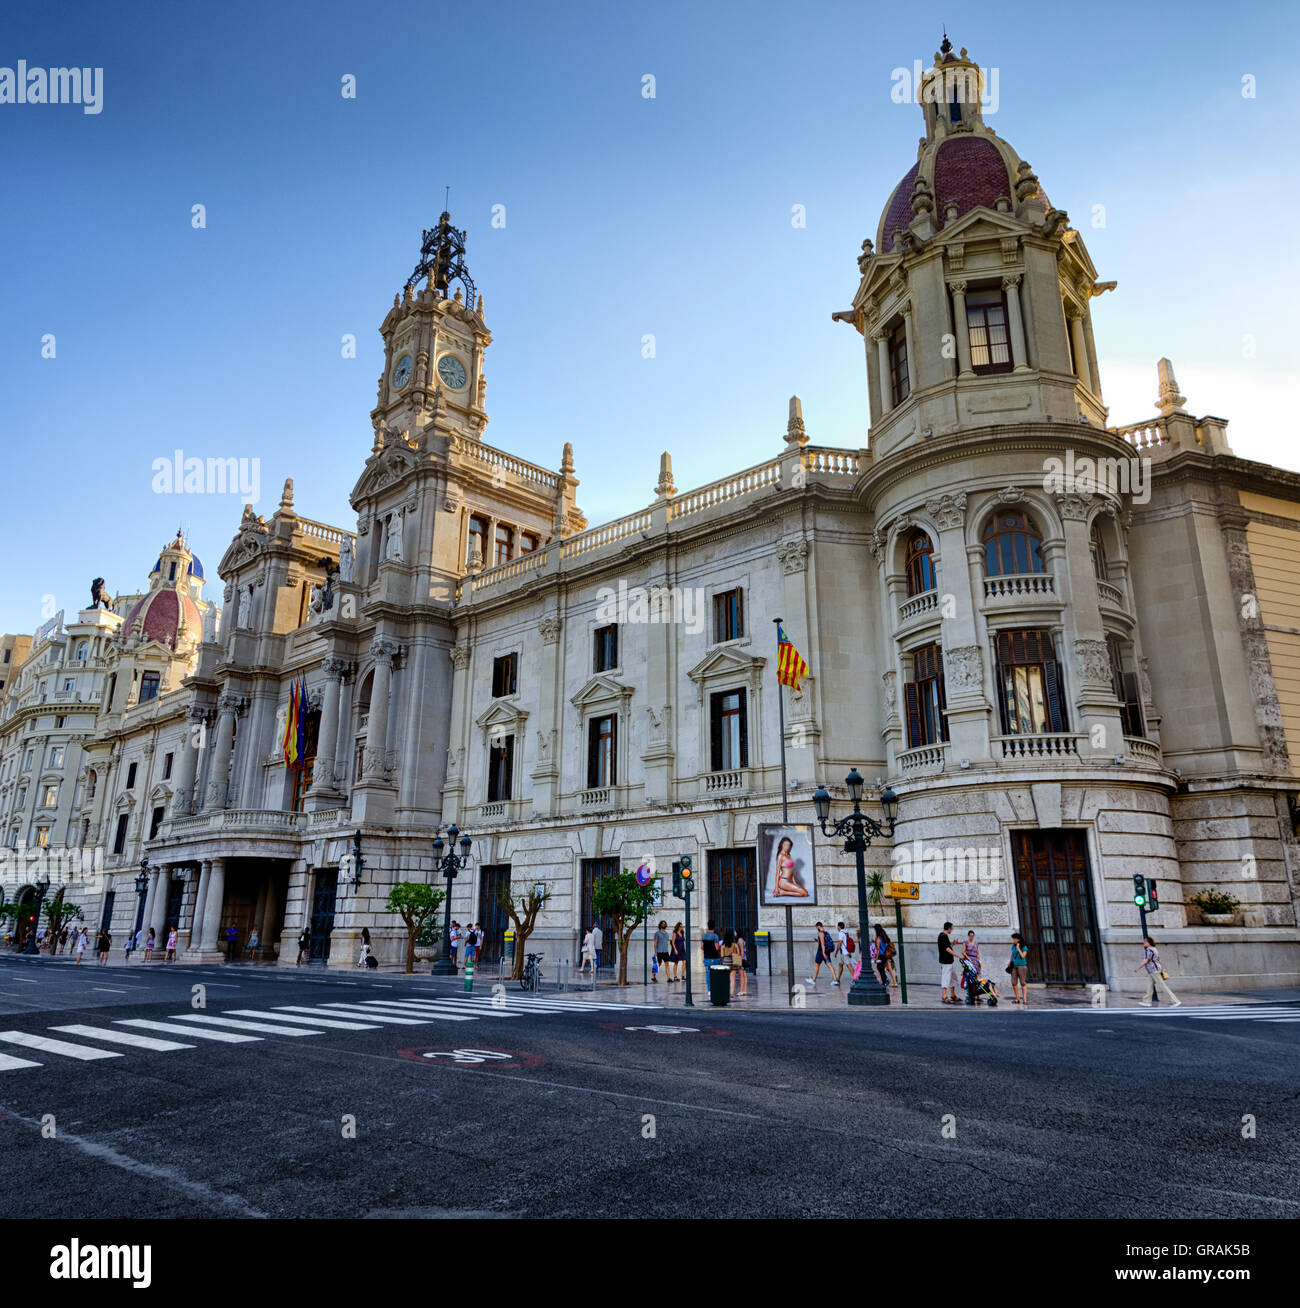 Lateral view on the building of town hall in city center Valencia, Spain - Stock Image